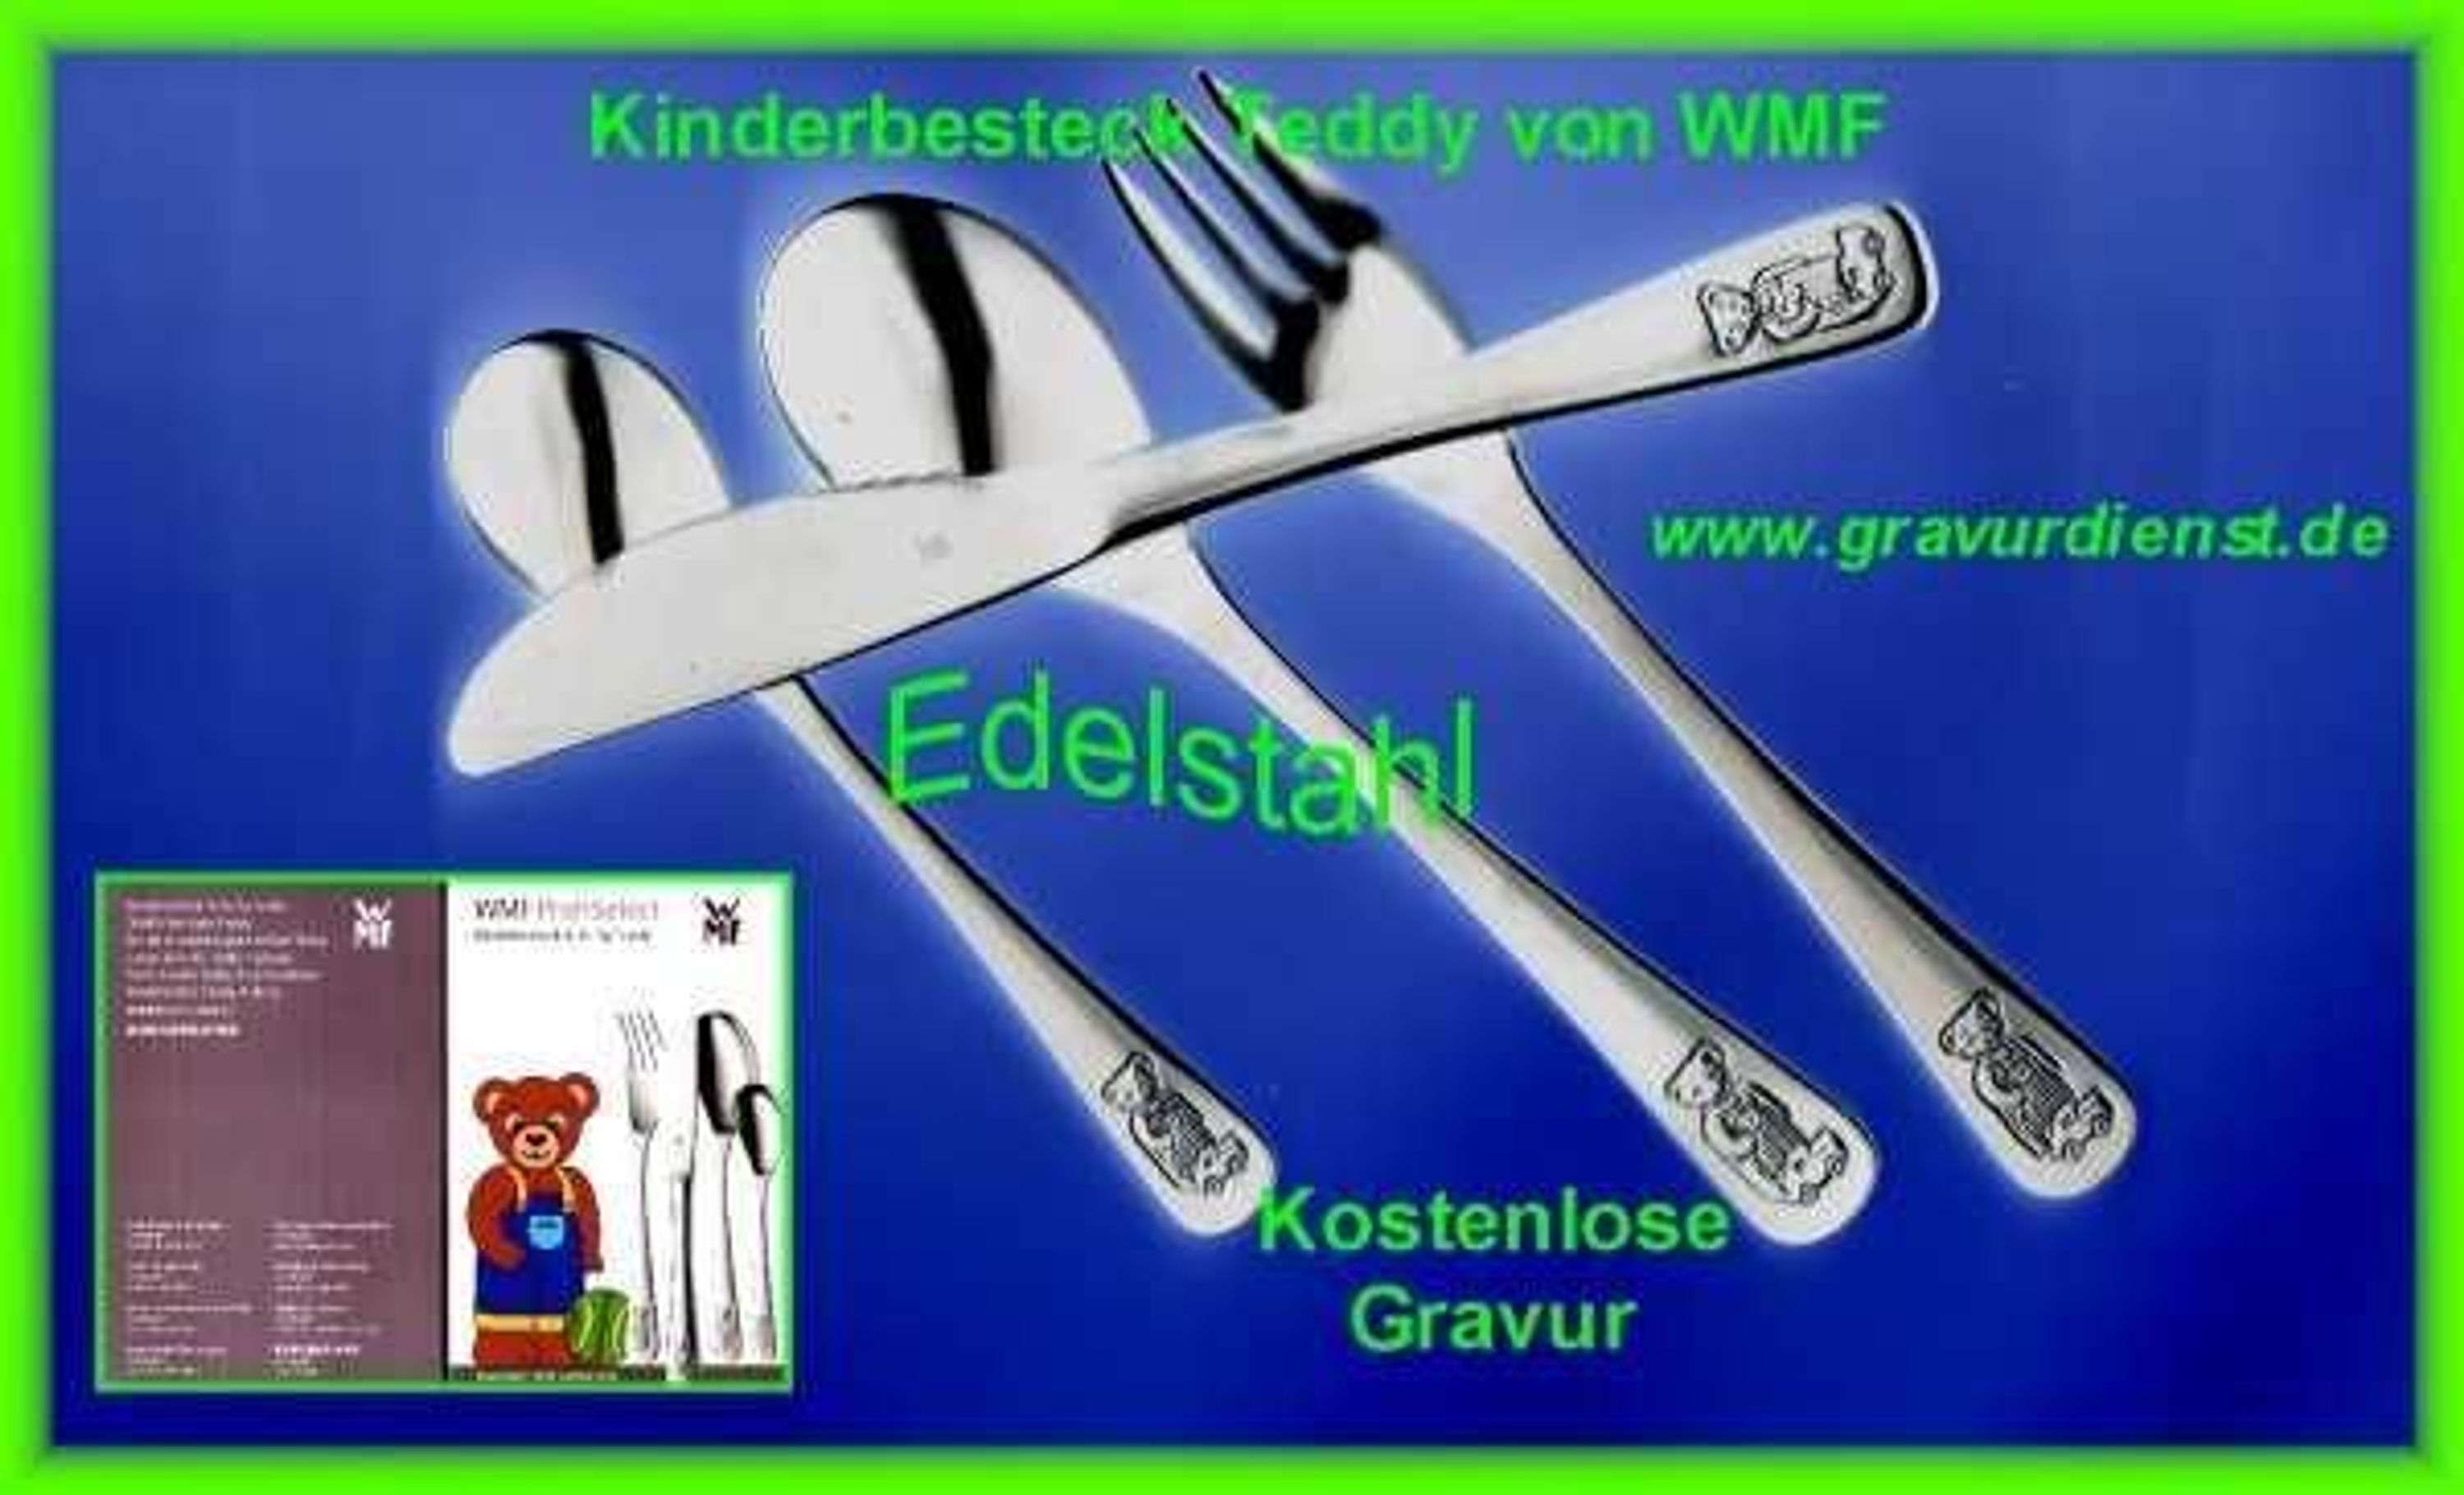 wmf kinderbesteck gravur 4 teilig incl gravur teddy kaufen bei. Black Bedroom Furniture Sets. Home Design Ideas